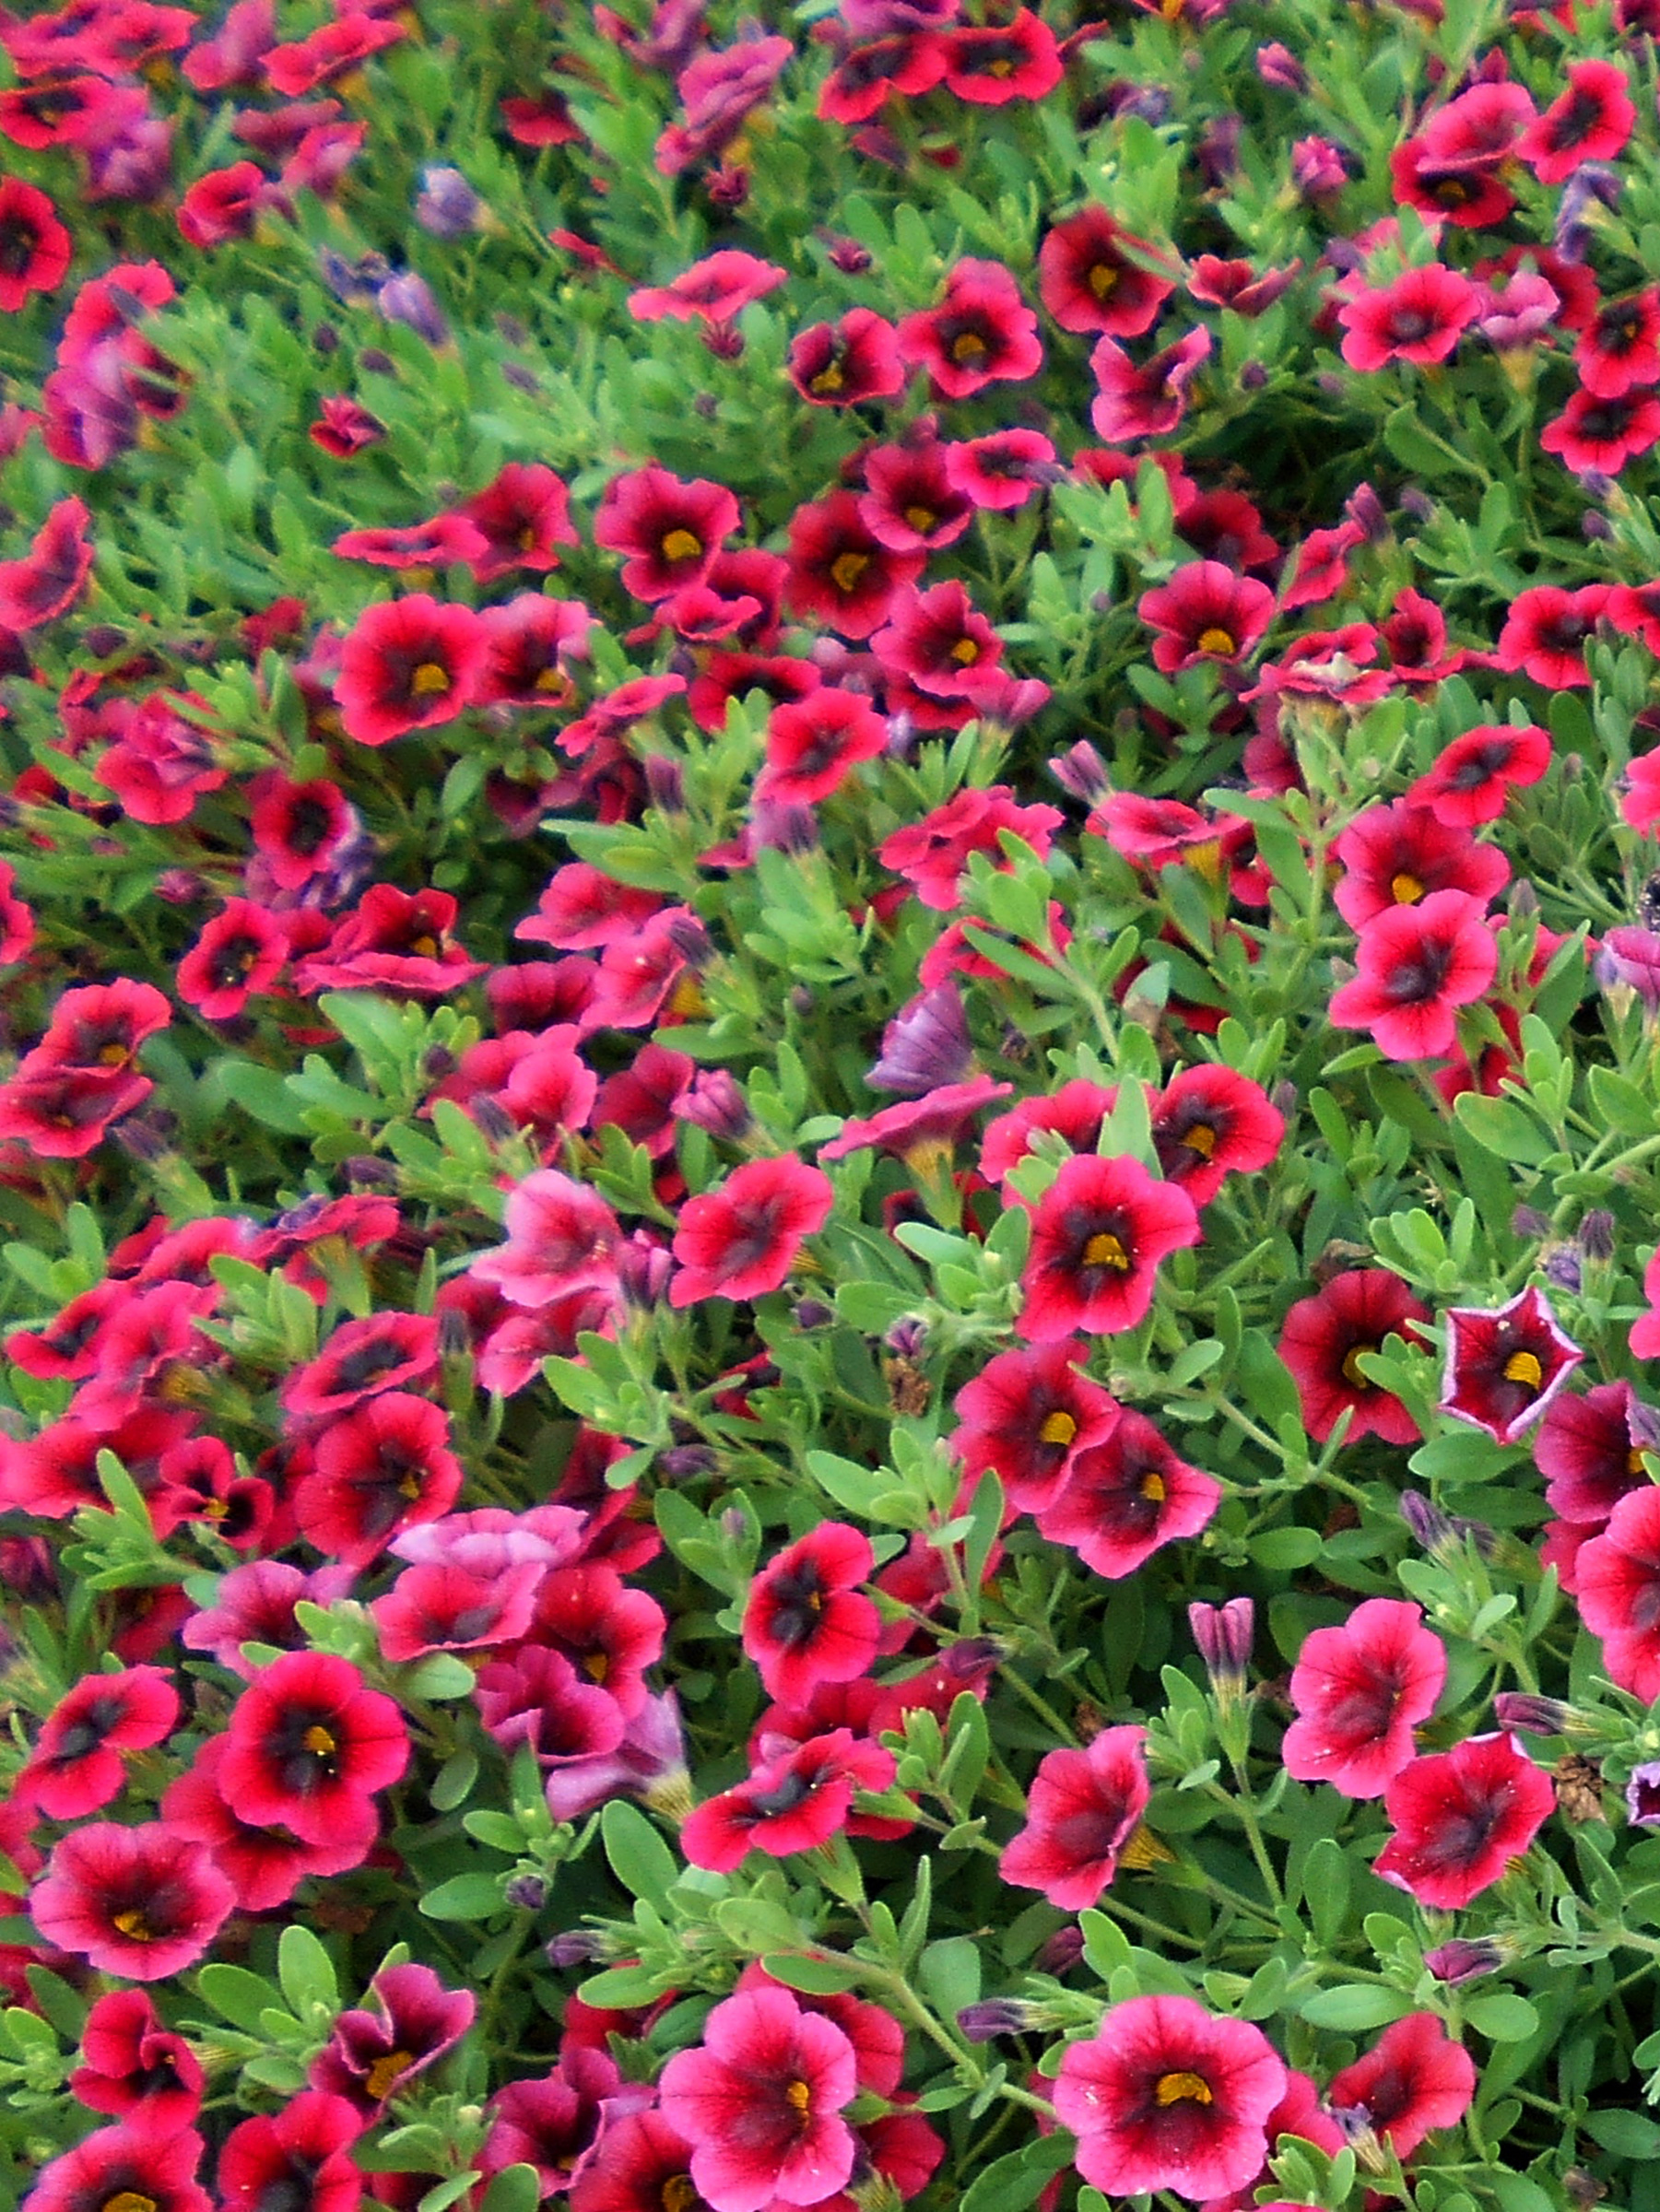 Annual flower trials at bluegrass lane horticulture - Calibrachoa superbells ...